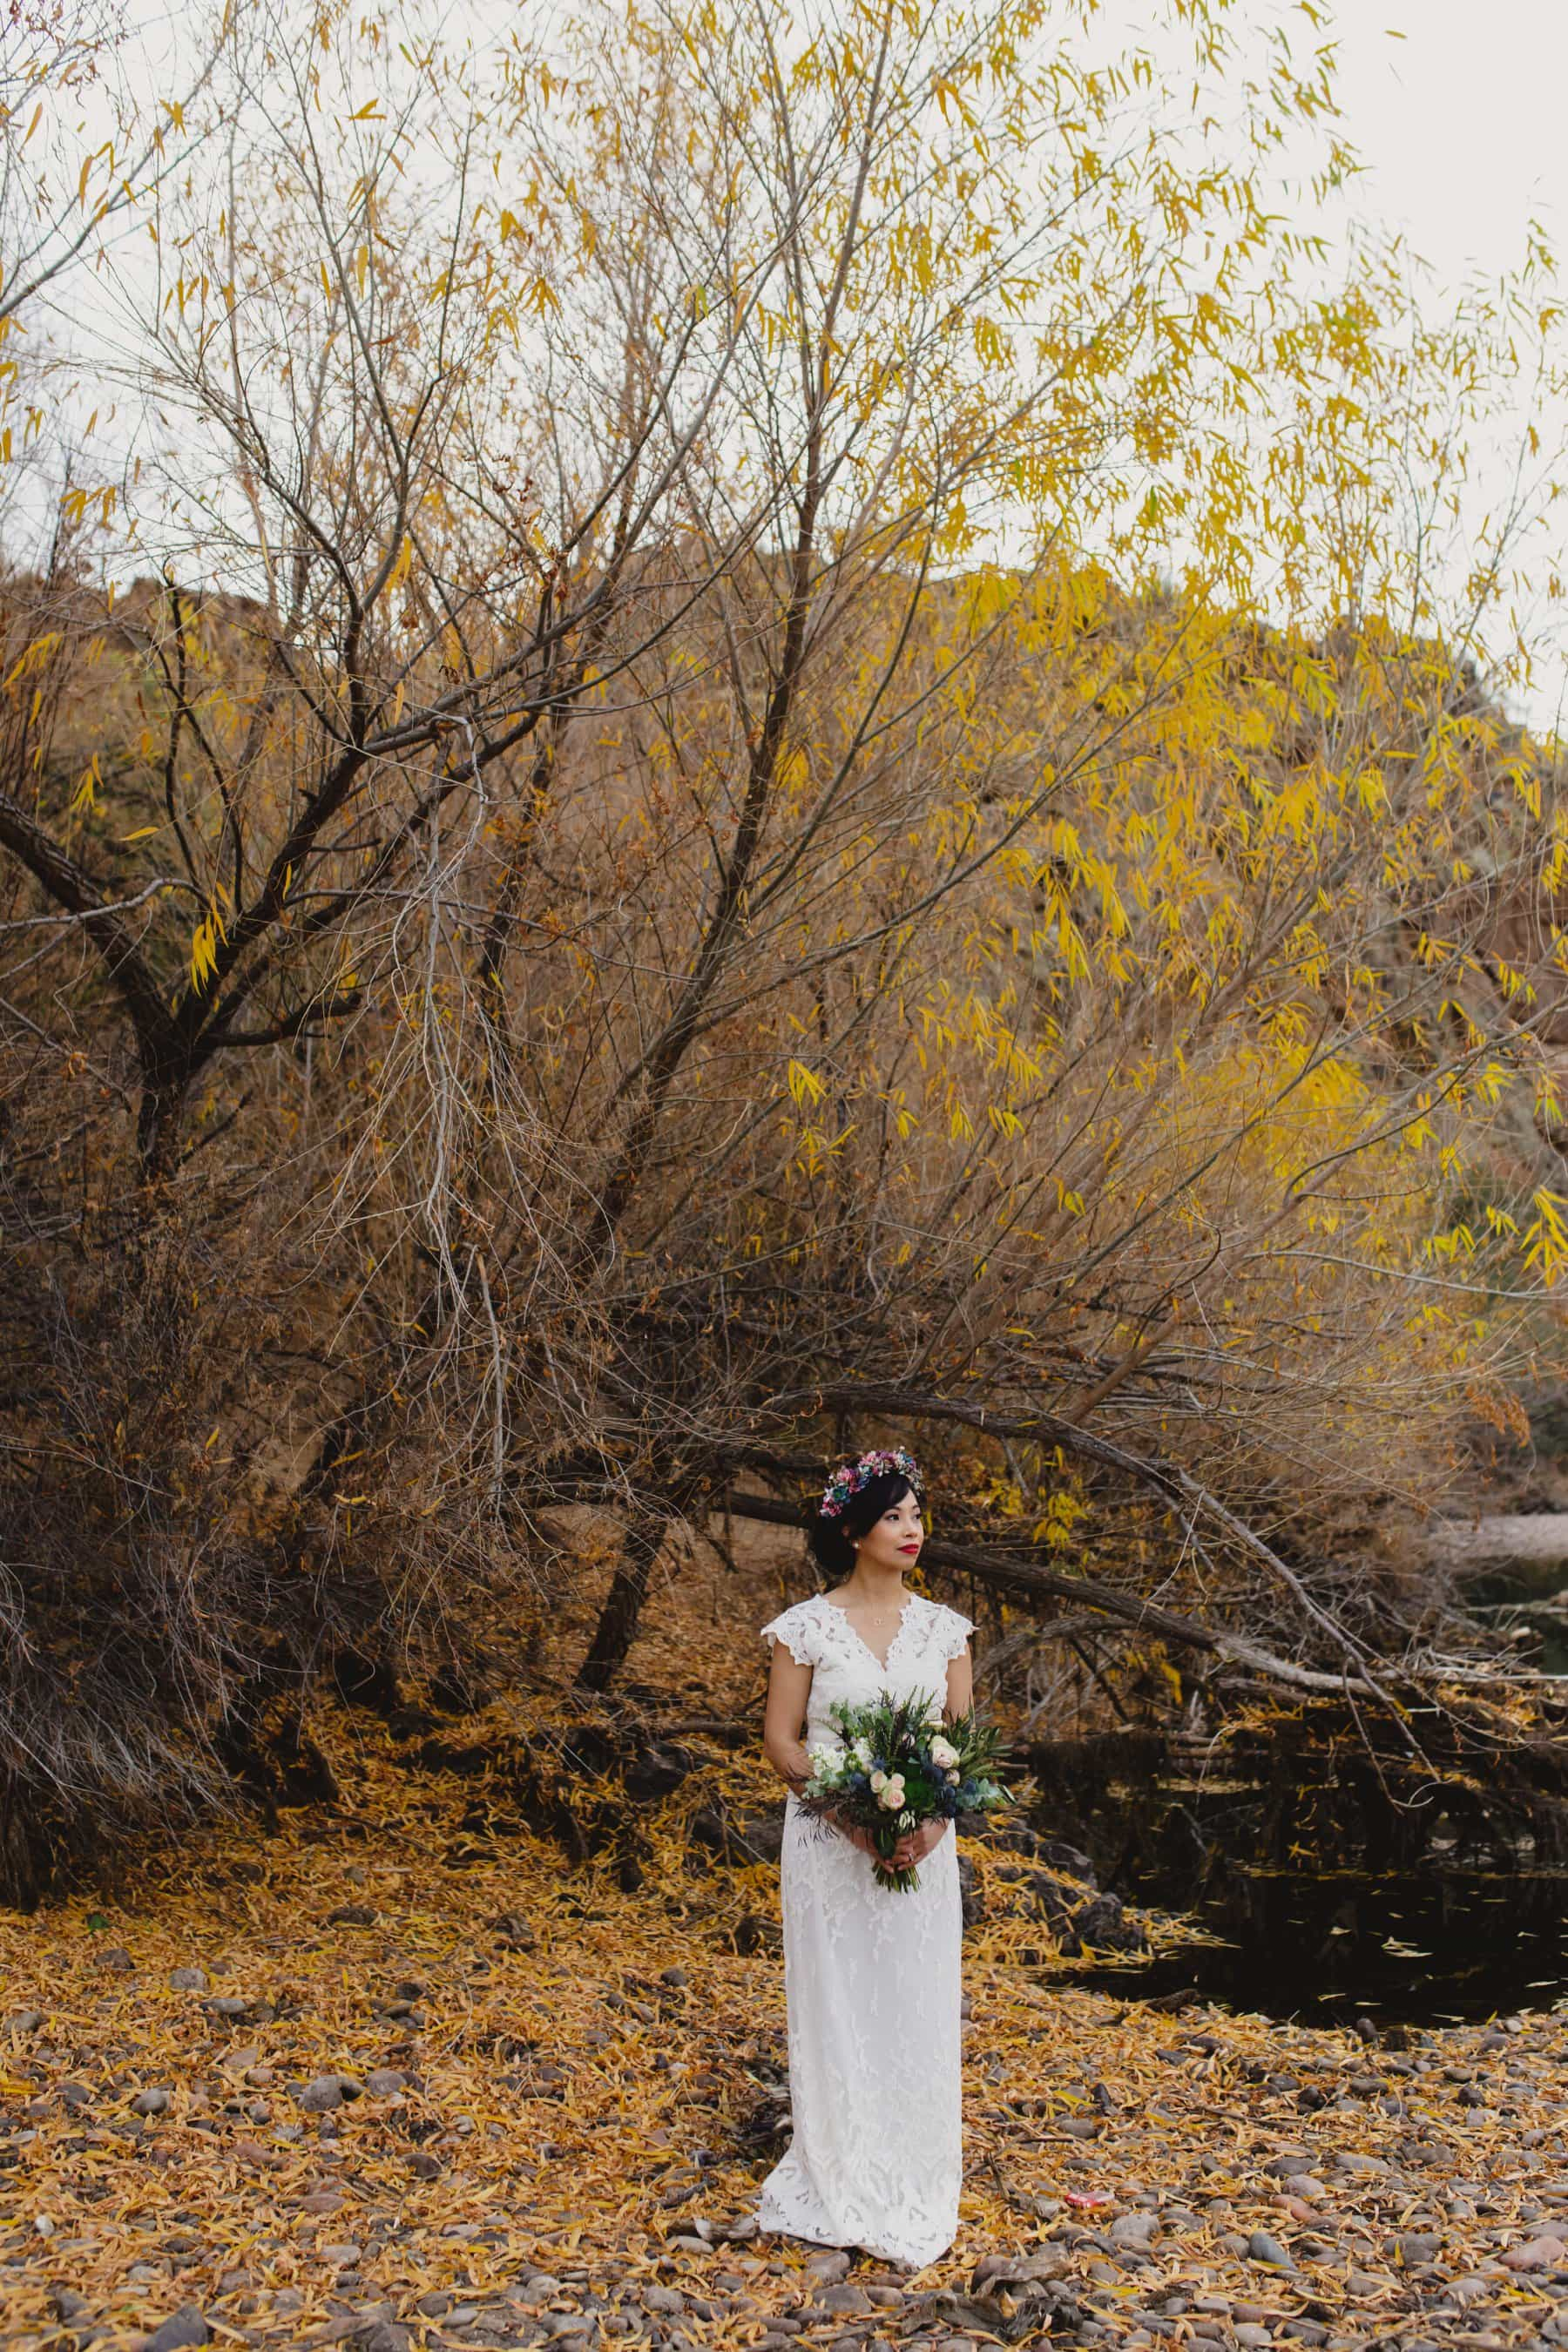 winter wedding fall leaves Salt River Arizona